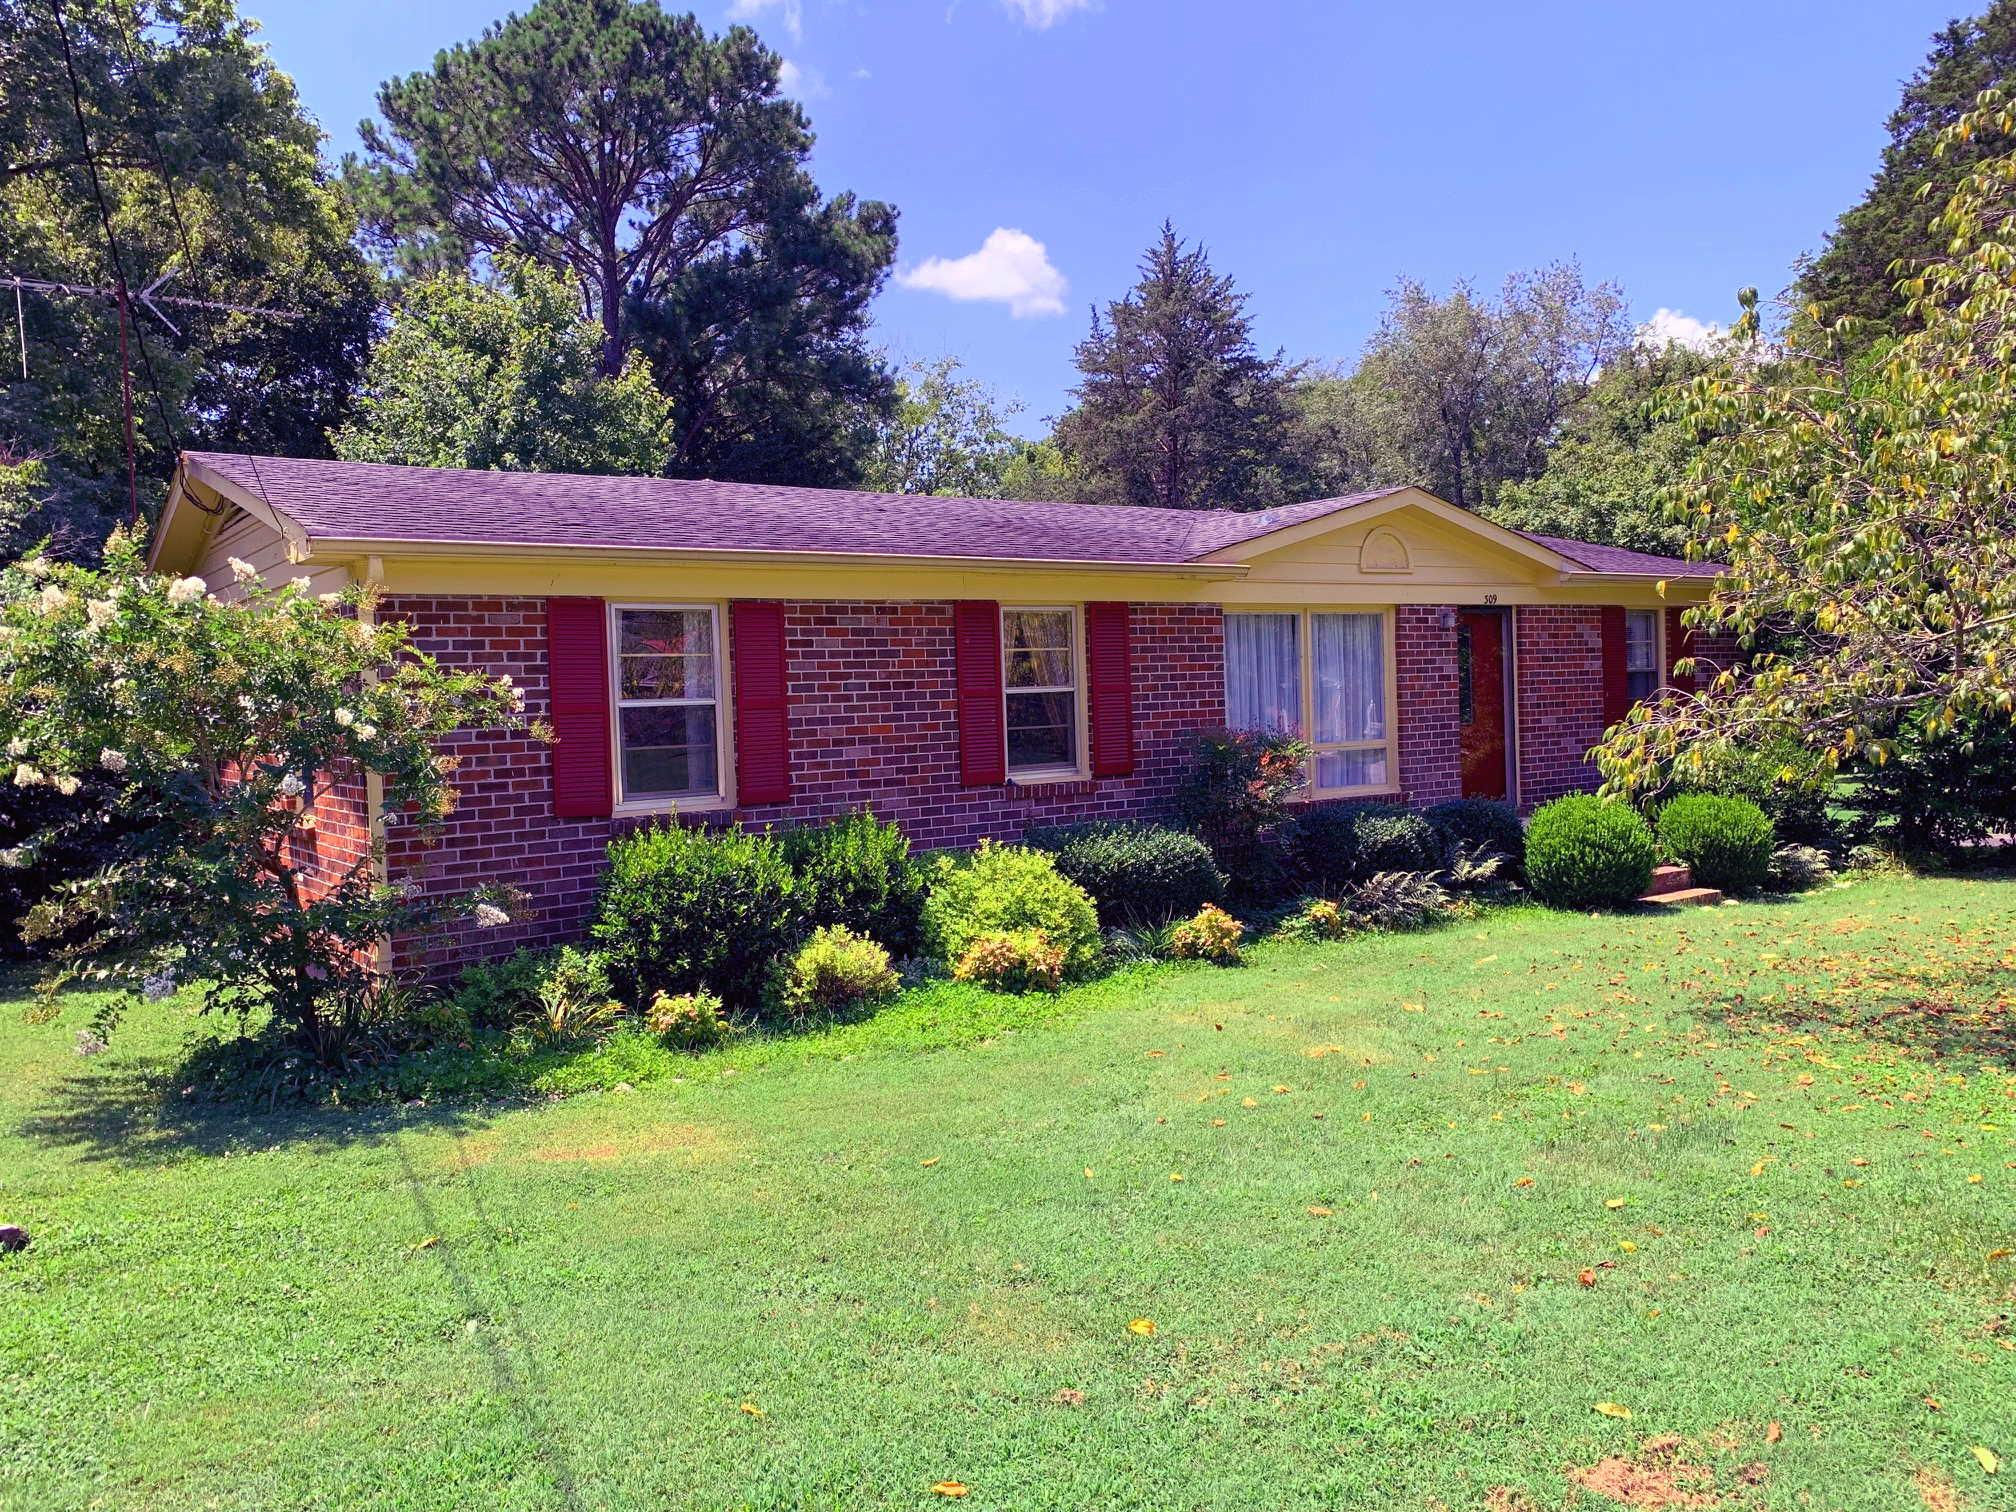 309 Greenbriar St, Woodbury, TN 37190 - Woodbury, TN real estate listing